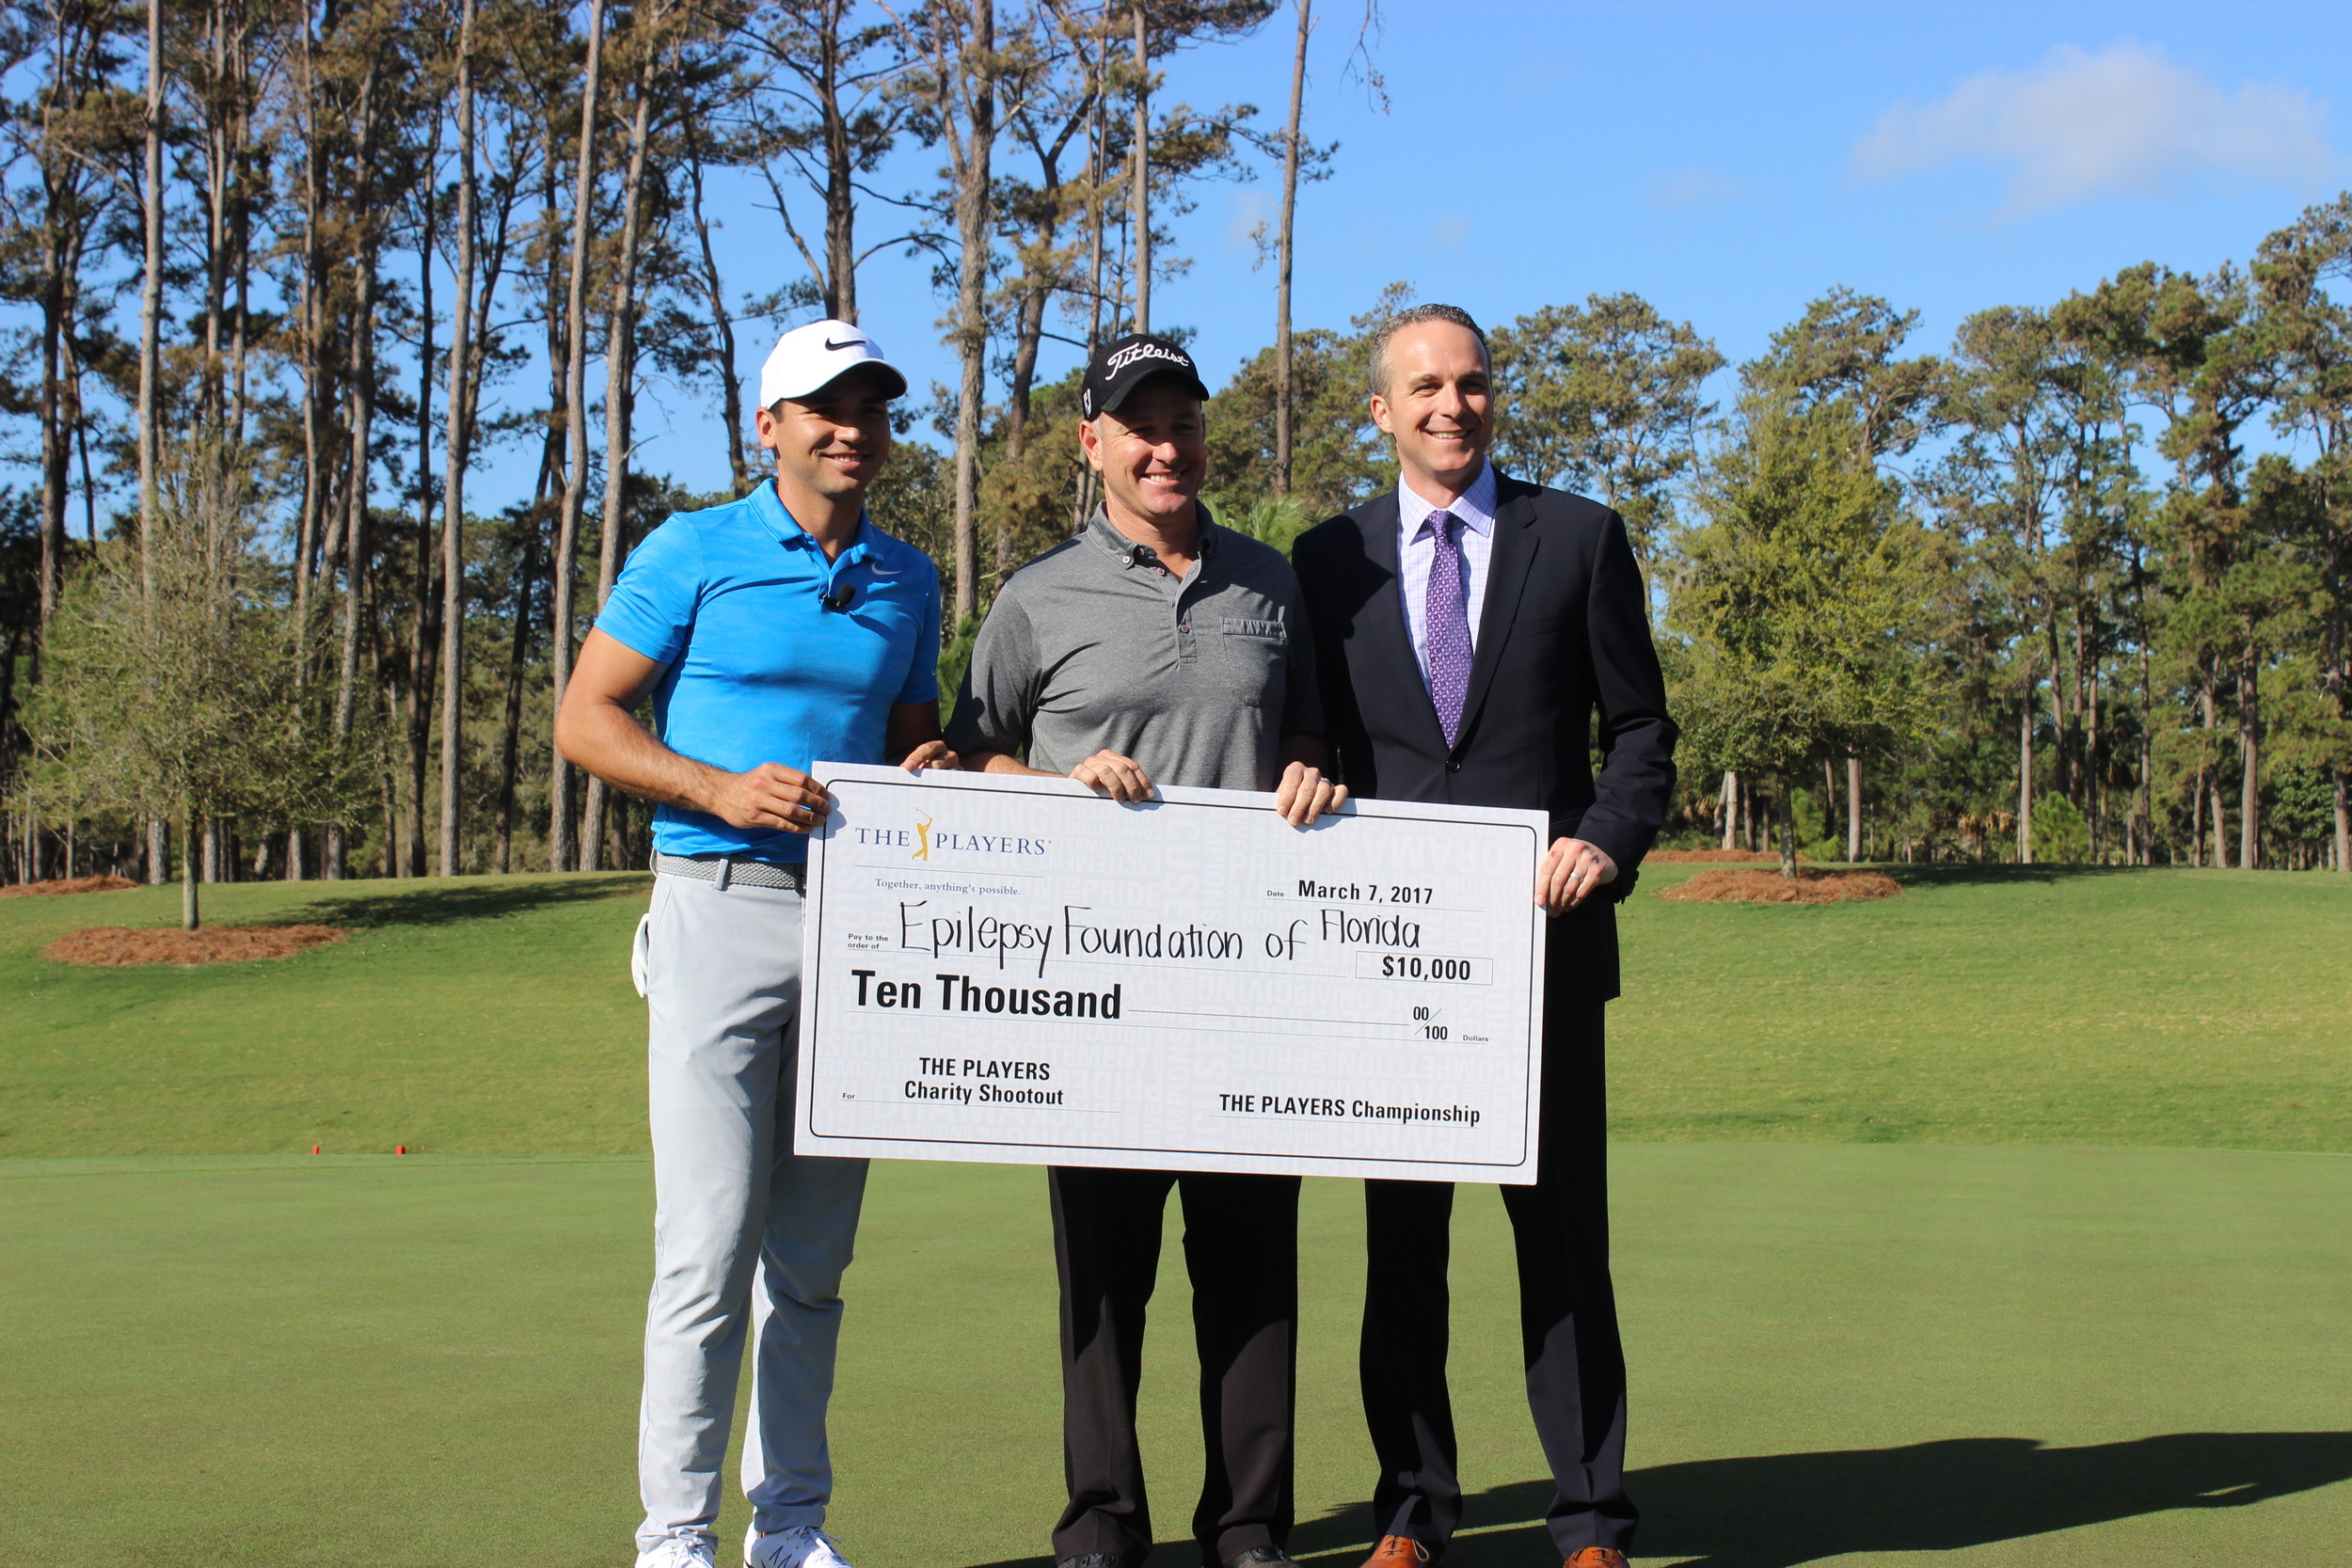 PGA Tour player Jason Day (left) and THE PLAYERS Championship Executive Director Jared Rice (right) present former PGA Tour player Jeff Klauk (center) with a $10,000 donation for Epilepsy Foundation of Florida after Klauk won the Charity Challenge.